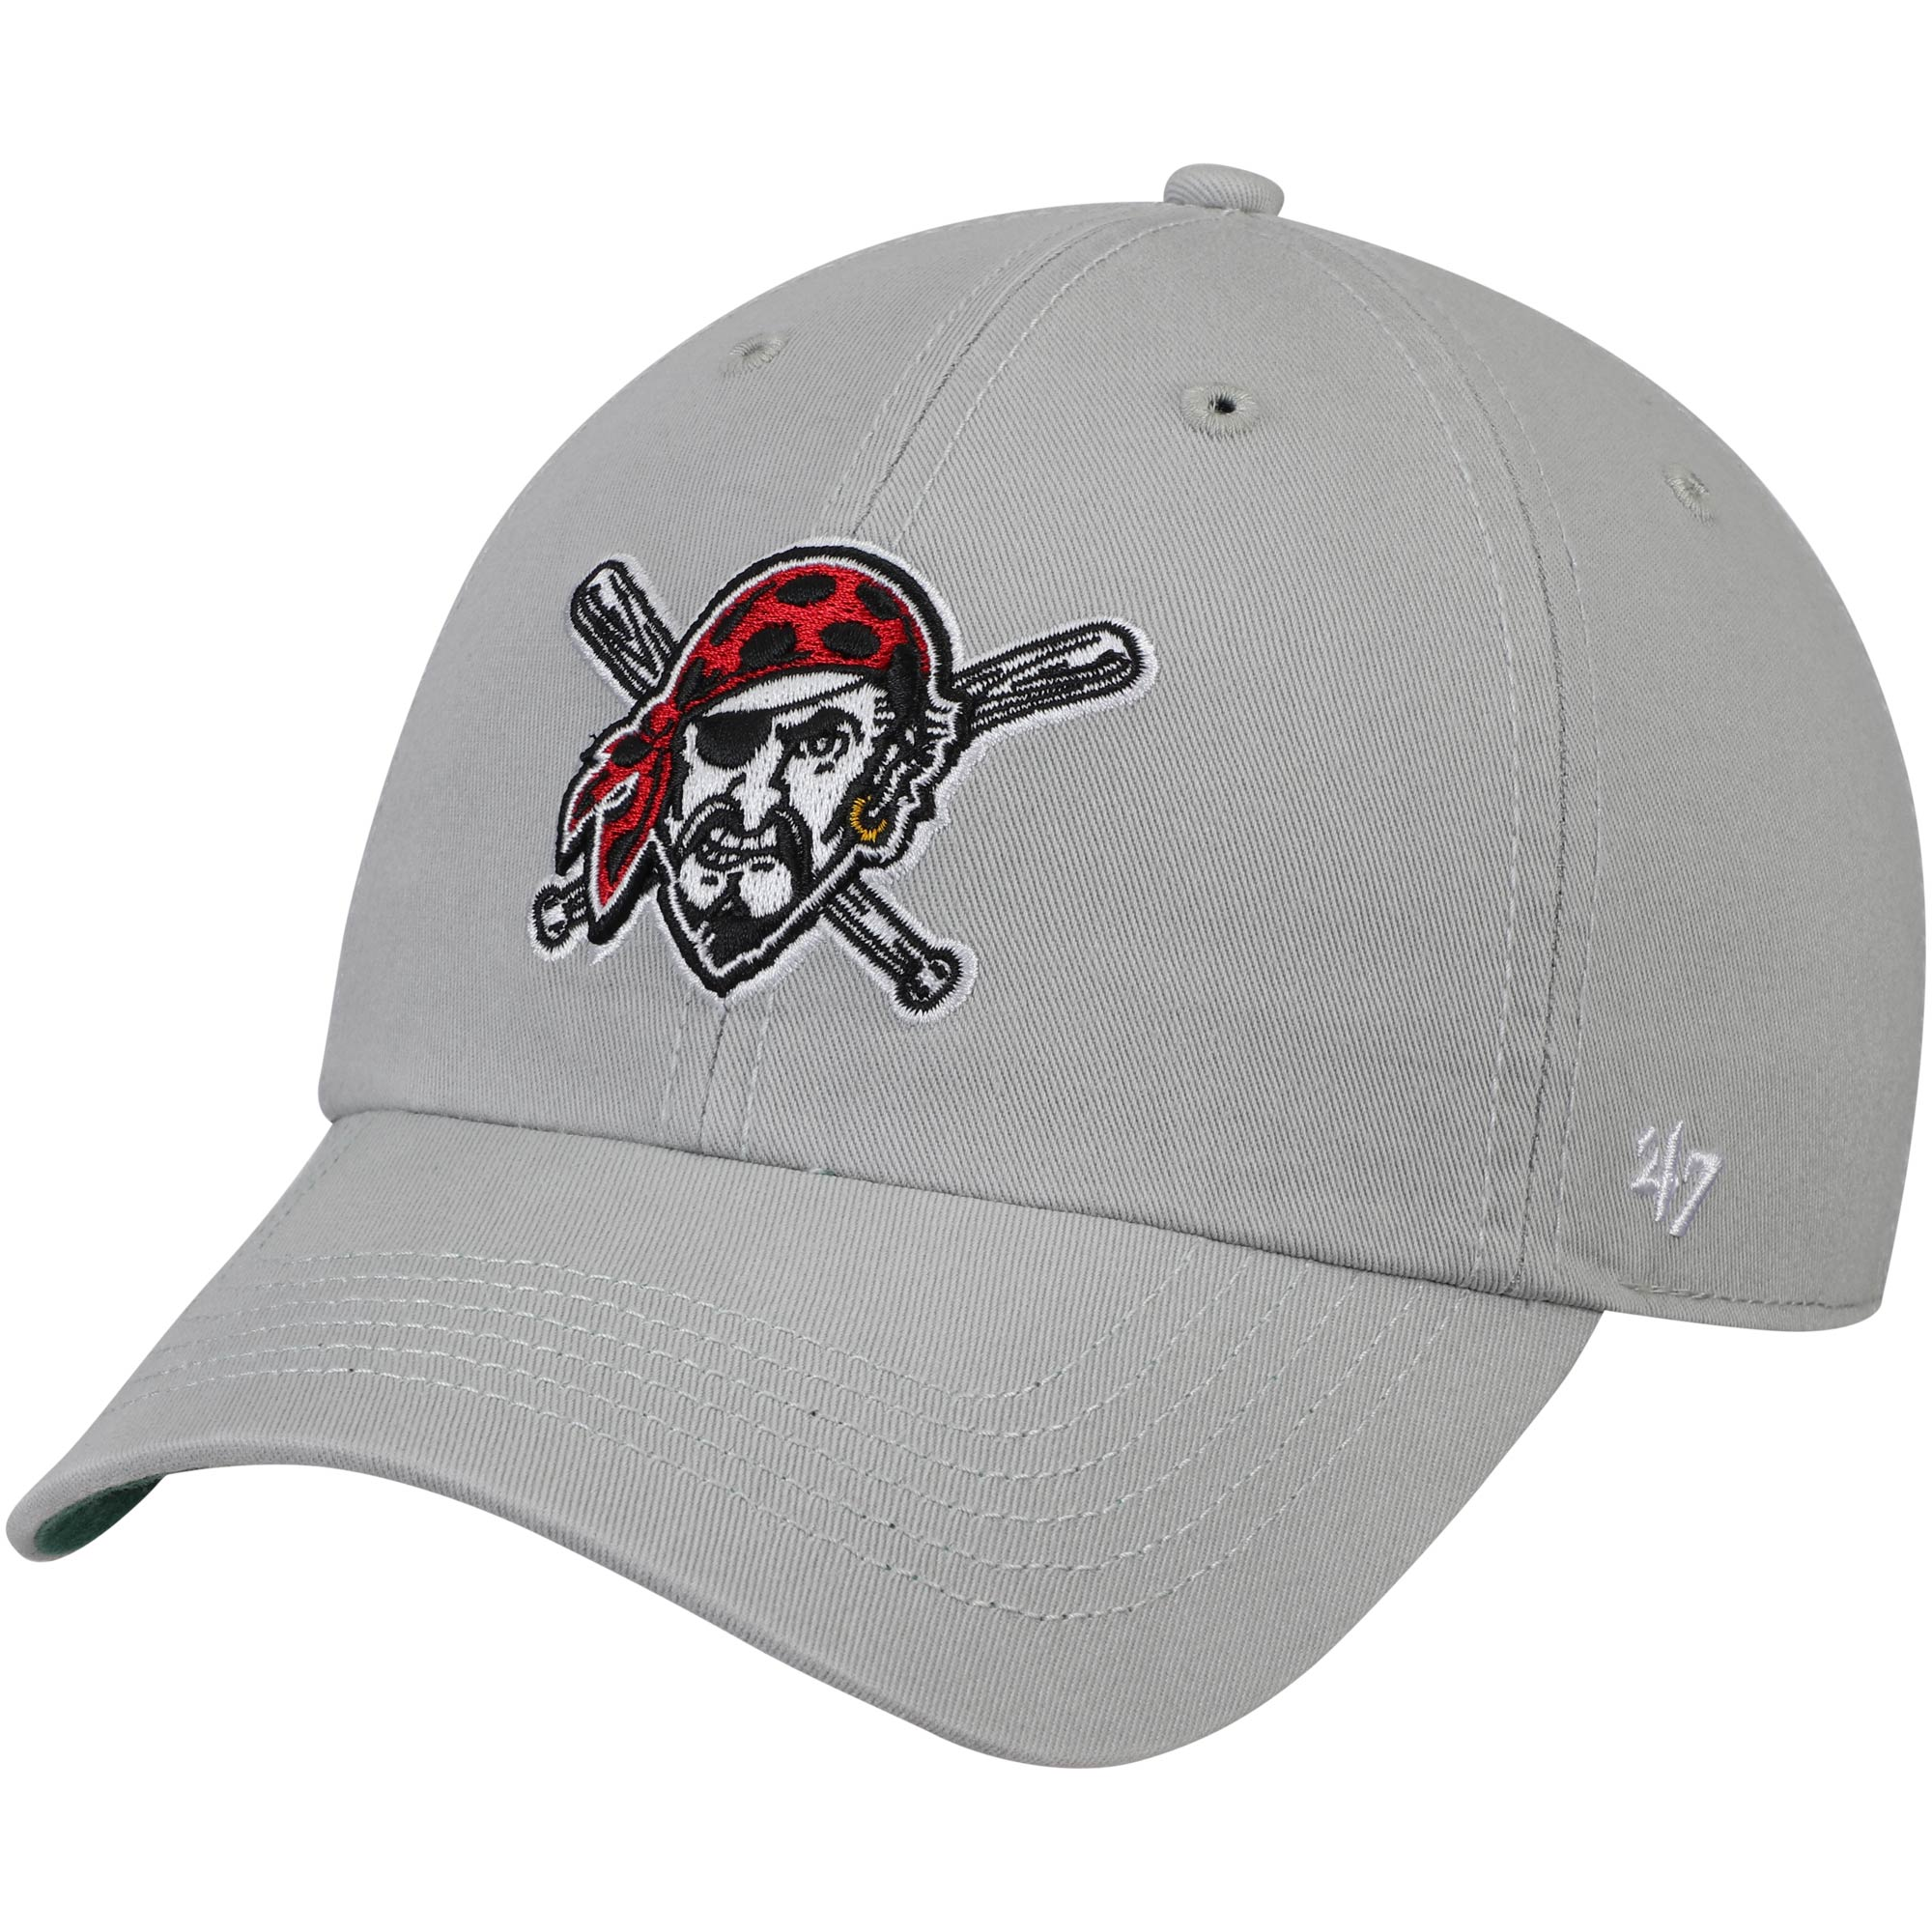 Pittsburgh Pirates '47 Primary Logo Franchise Fitted Hat - Gray